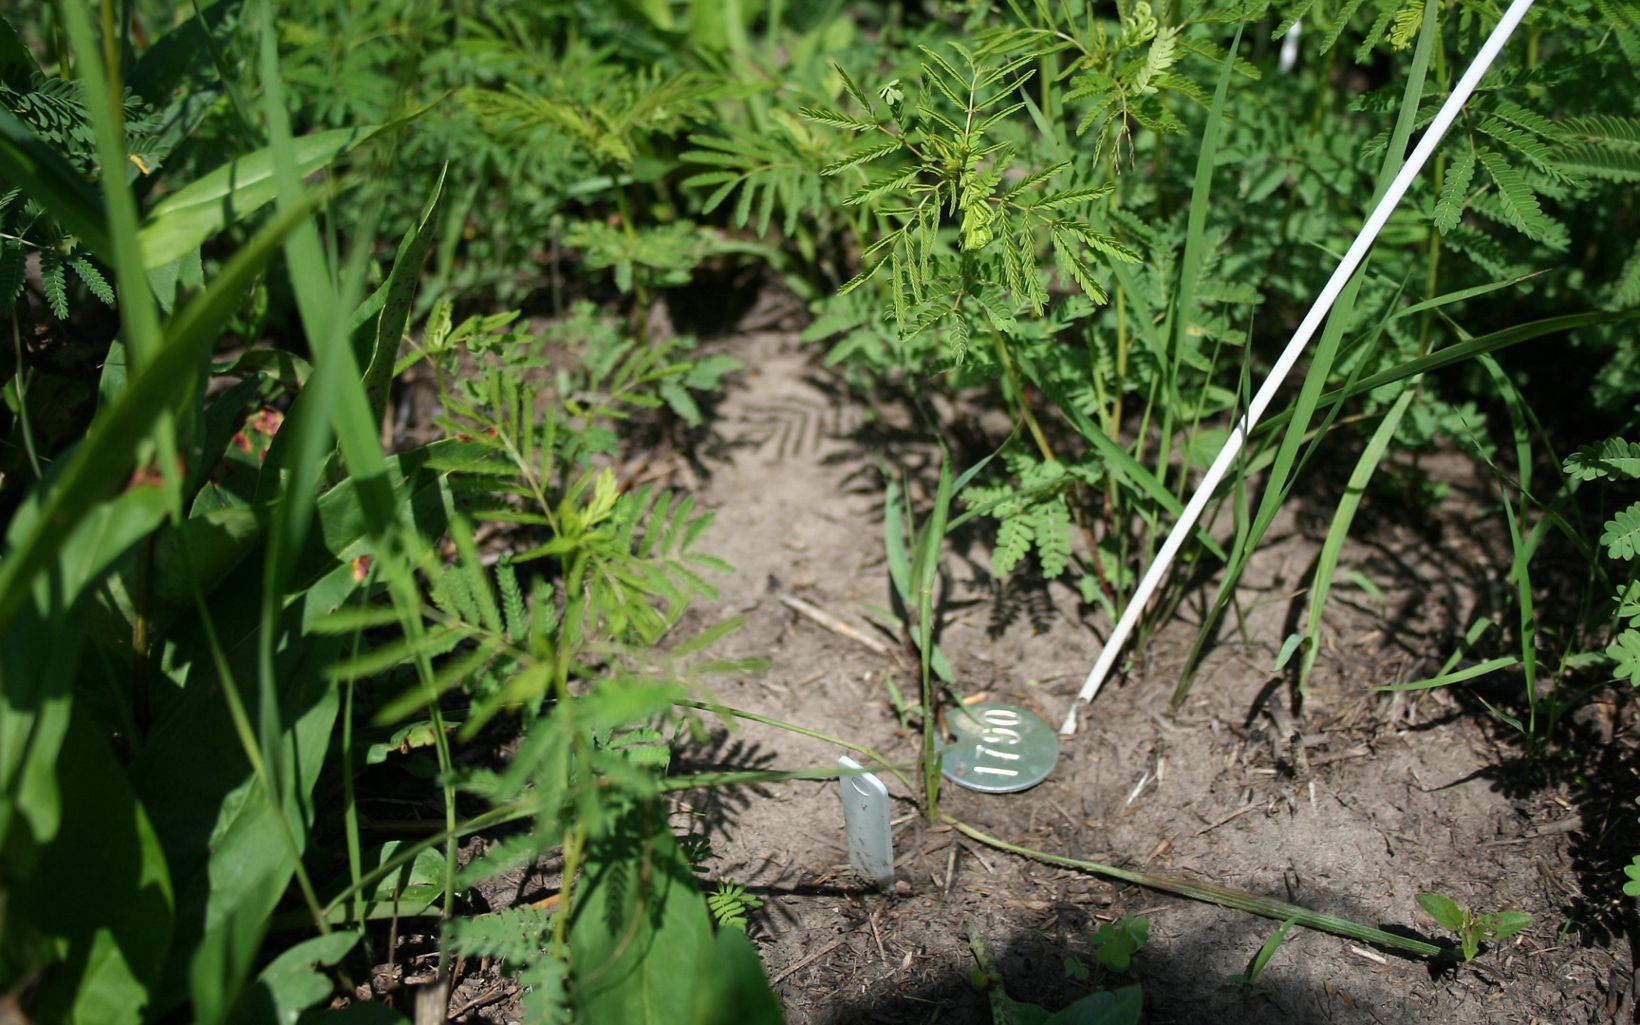 Metal tags and plastic stakes mark individual plants and patches of soil being monitored by scientists from the Kansas Biological Survey.